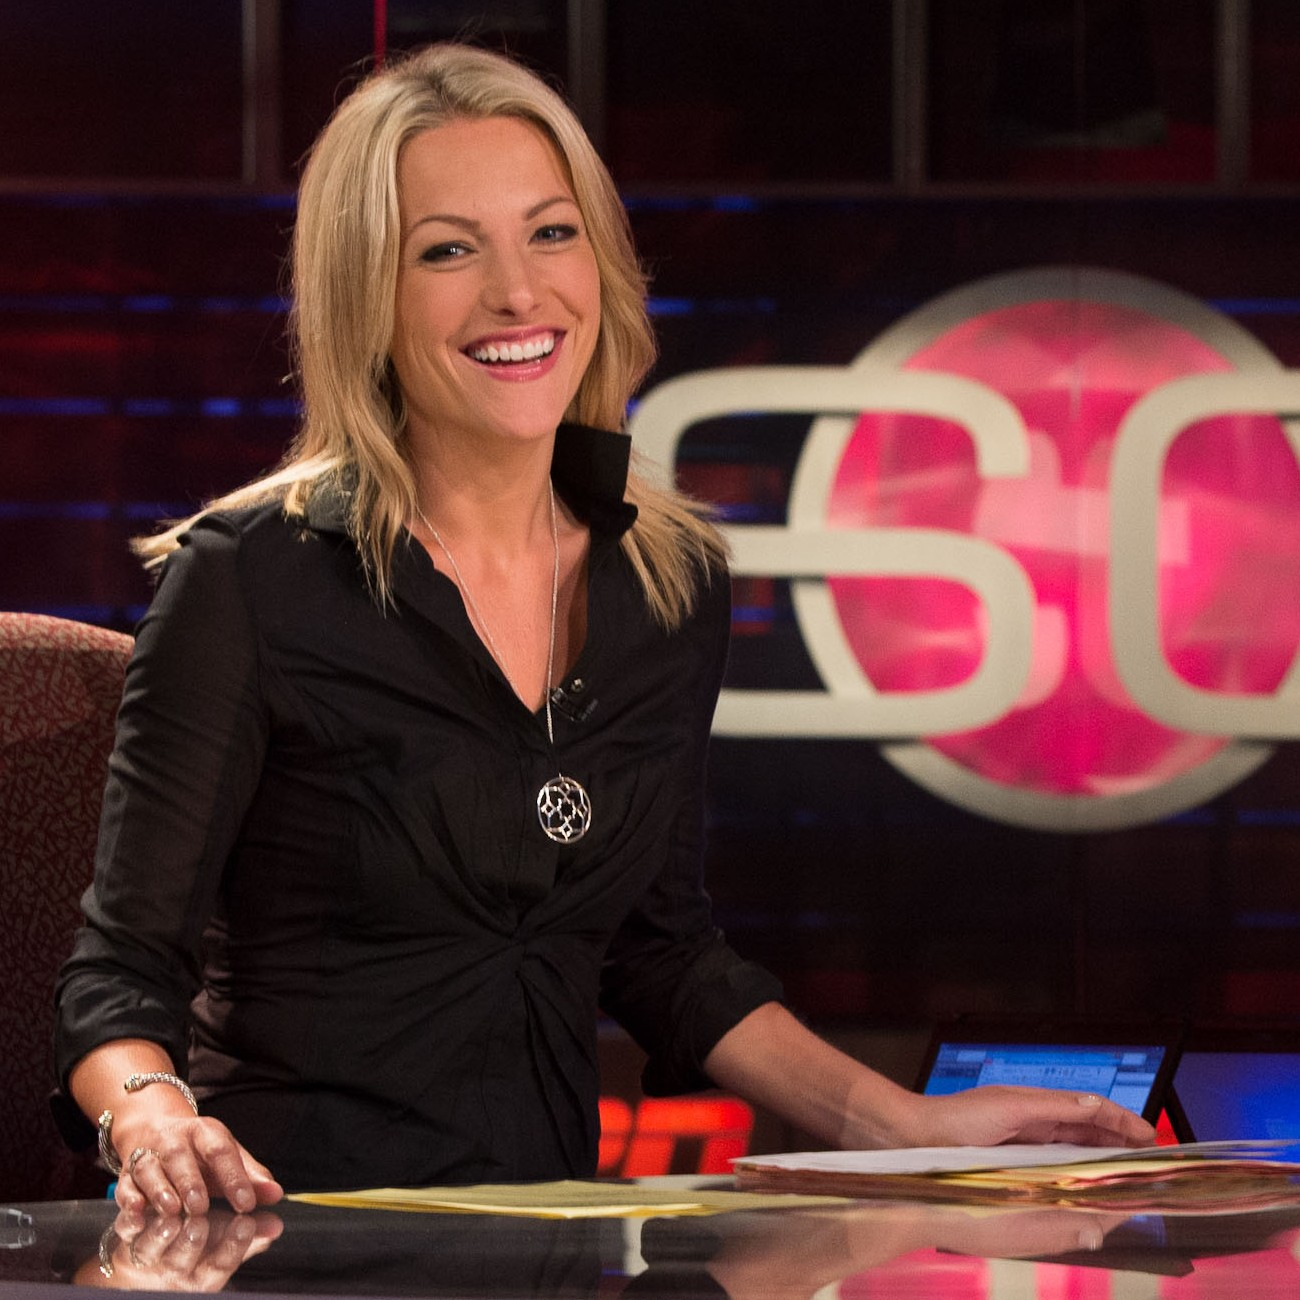 The Top 25 SportsCenter Anchors of All-Time